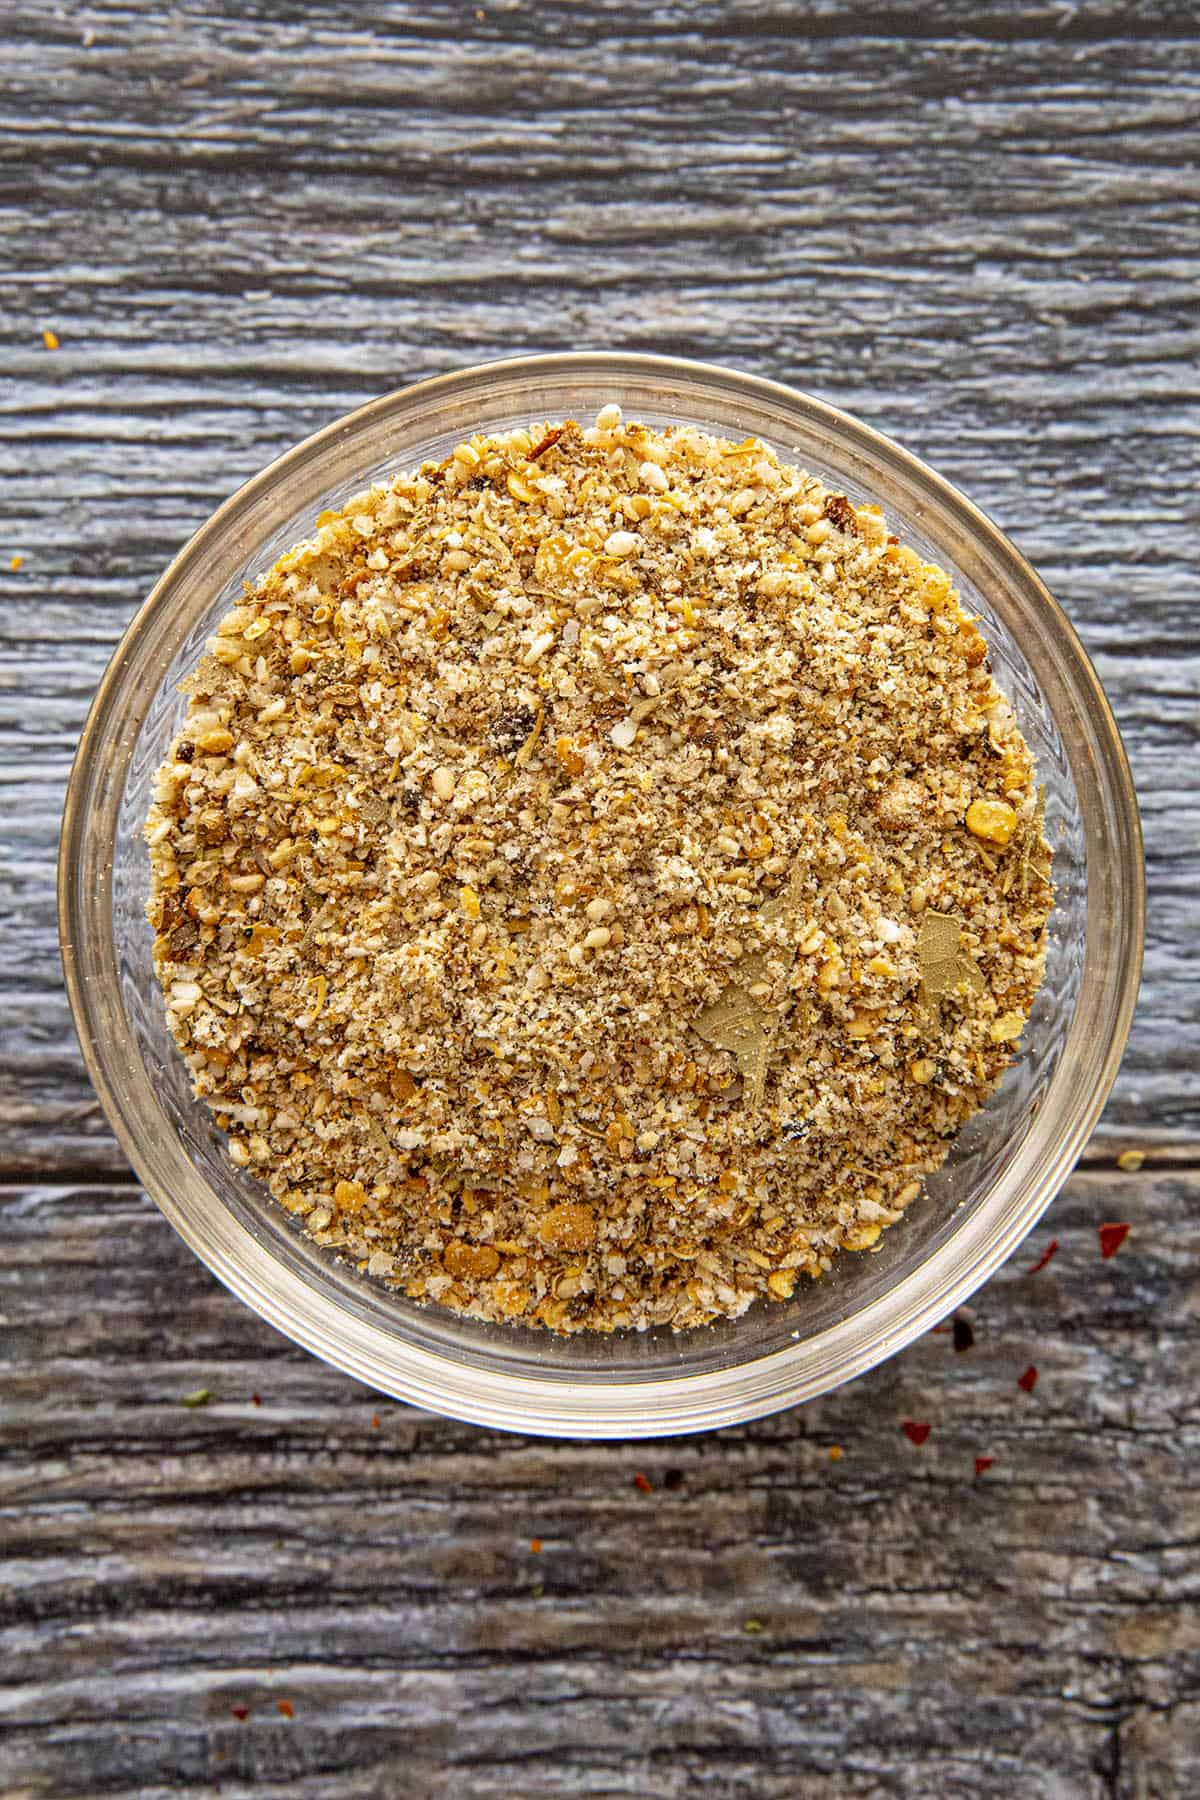 Ground spices and seeds in a bowl